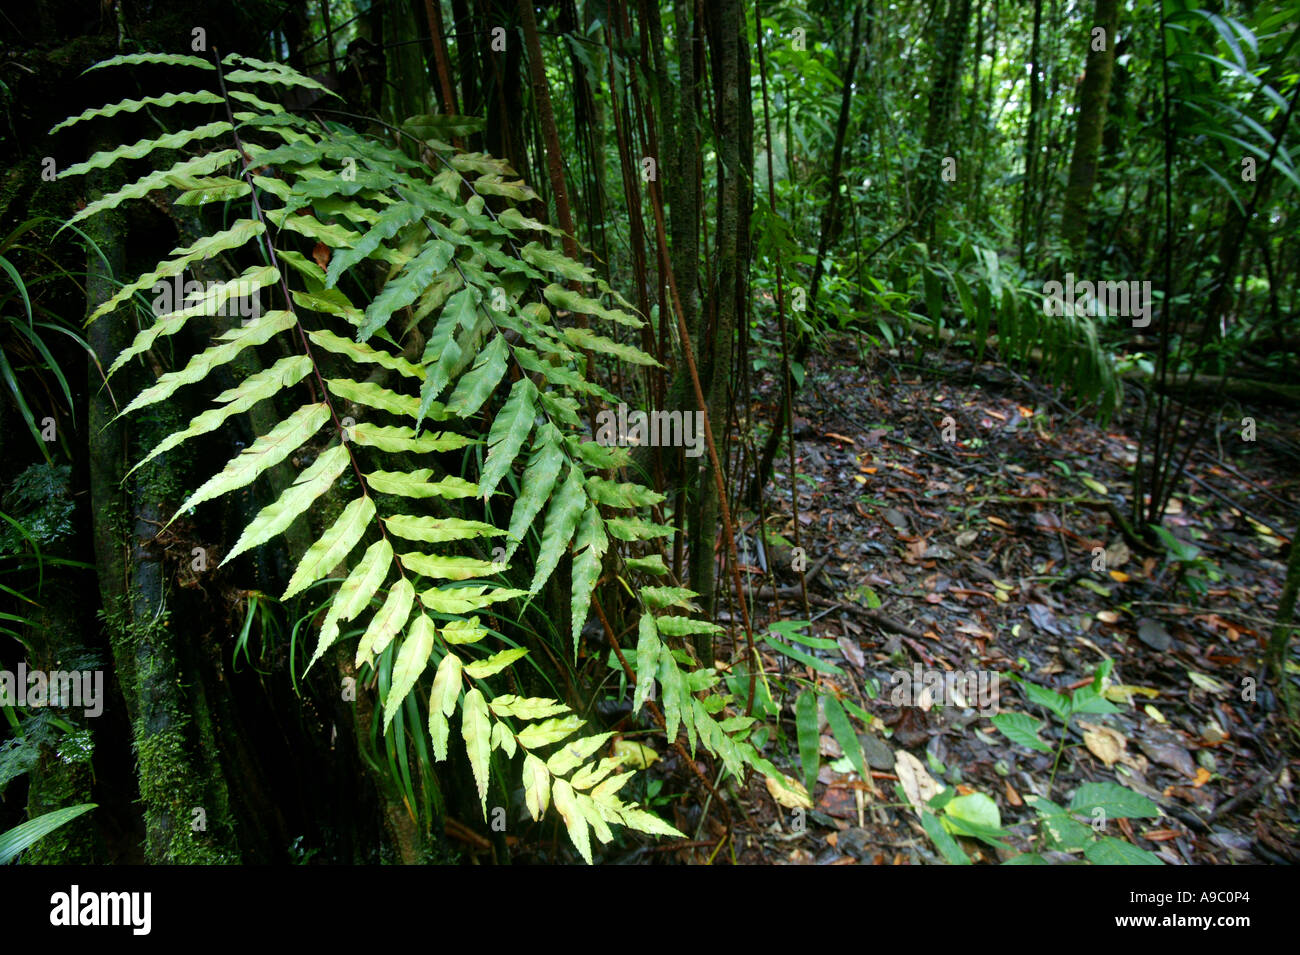 Leaves in the Pirre cloudforest in Darien national park, Darien province, Republic of Panama. Stock Photo